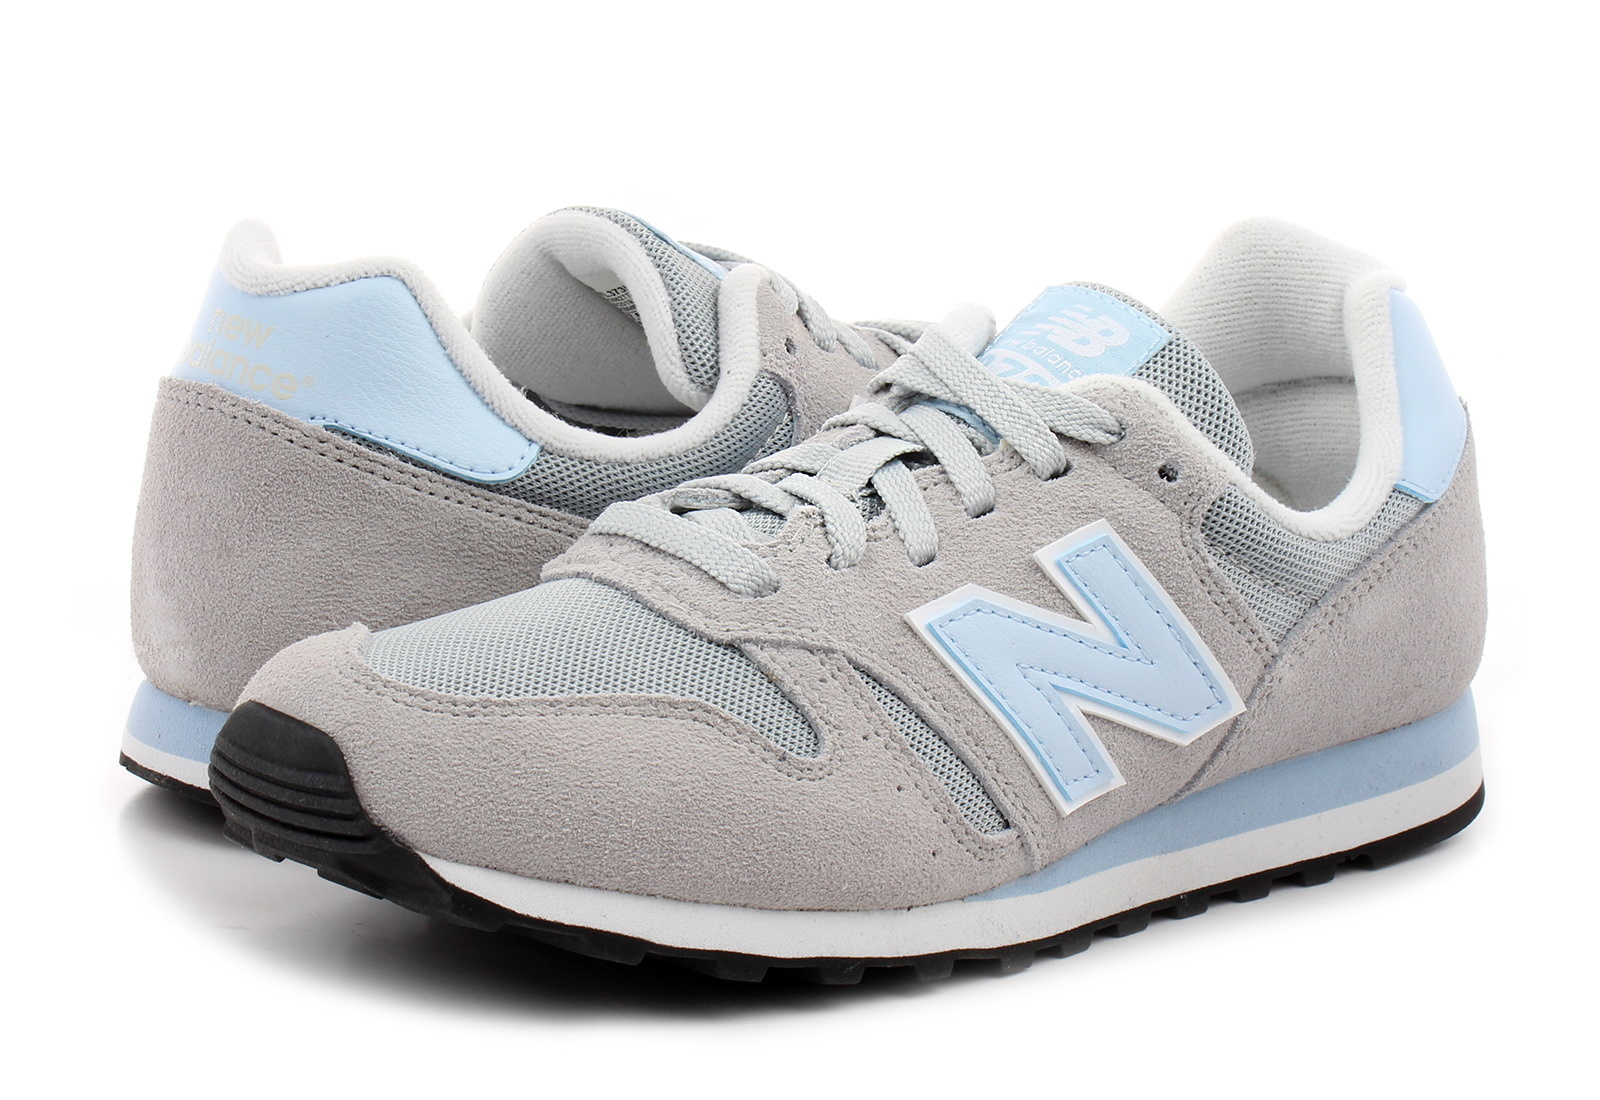 revendeur b5201 cfba0 New Balance Shoes - Wl373 - WL373LAA - Online shop for sneakers, shoes and  boots